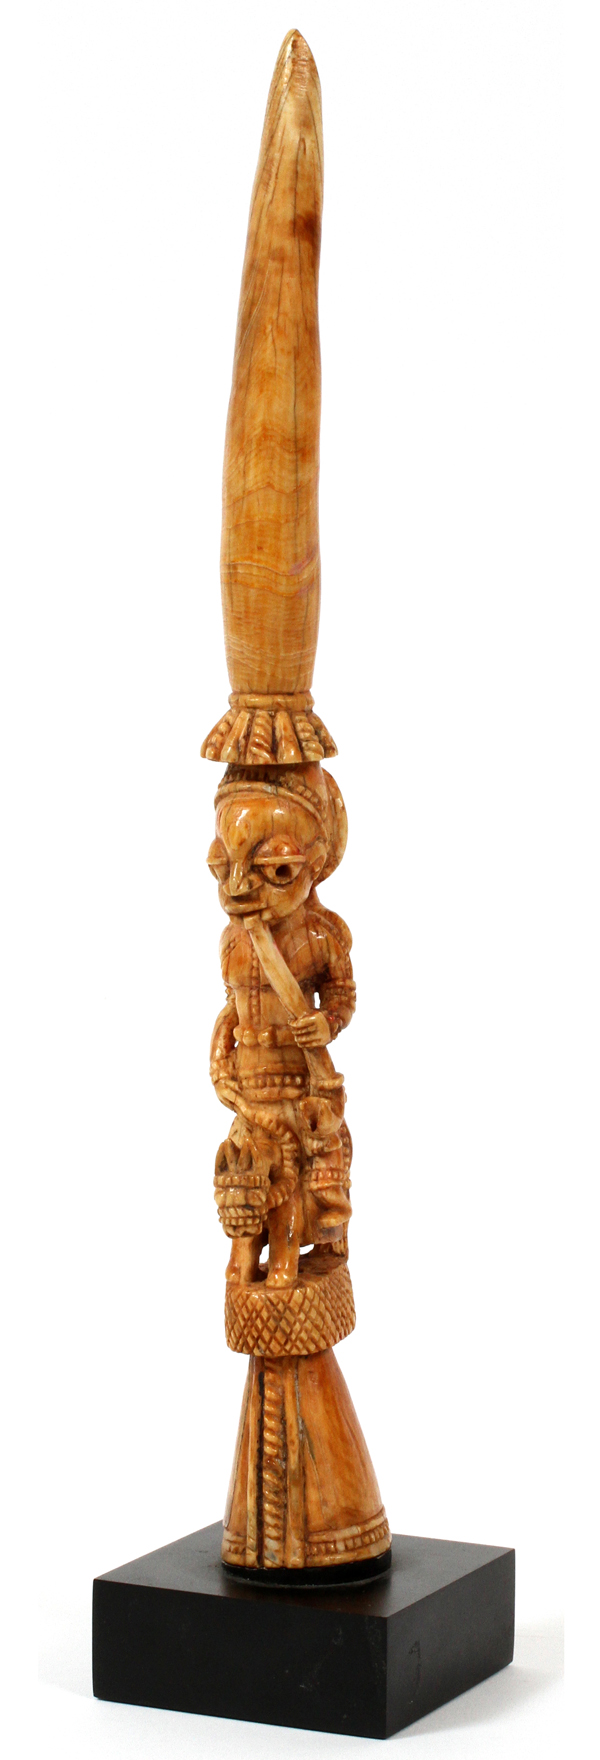 "Lot 144 - AFRICAN TRIBAL CARVED IVORY TUSK, L 12 1/4"": Depicting an elongated figure with pipe, riding a"